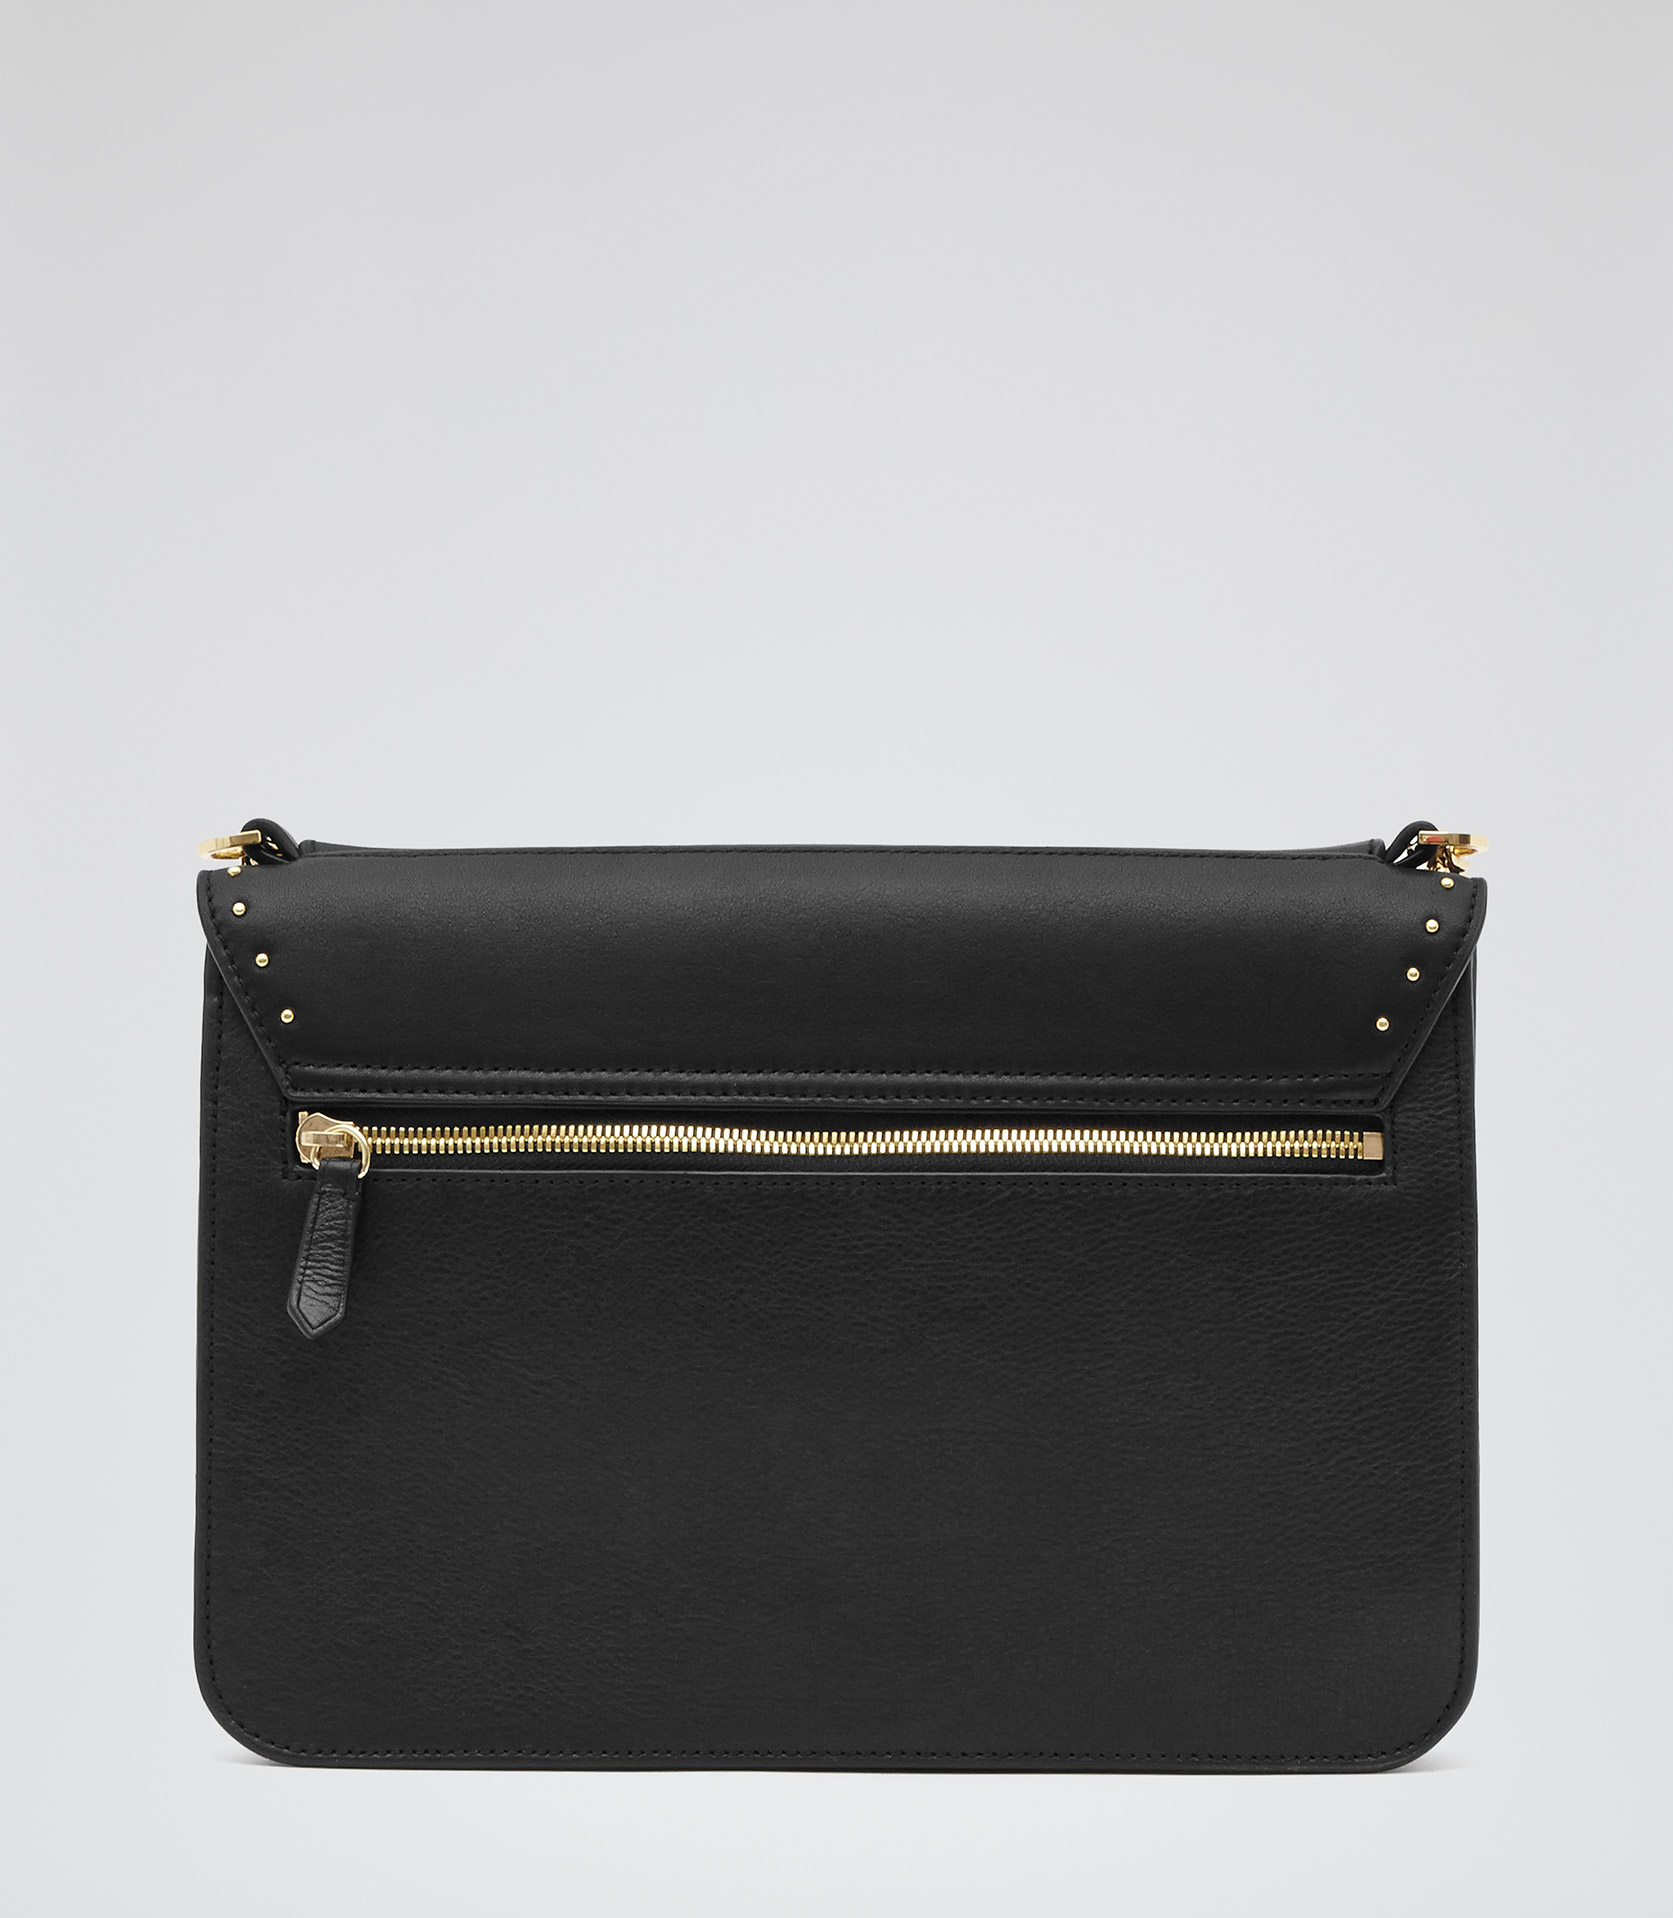 Tali Stud Black Studded Shoulder Bag - REISS